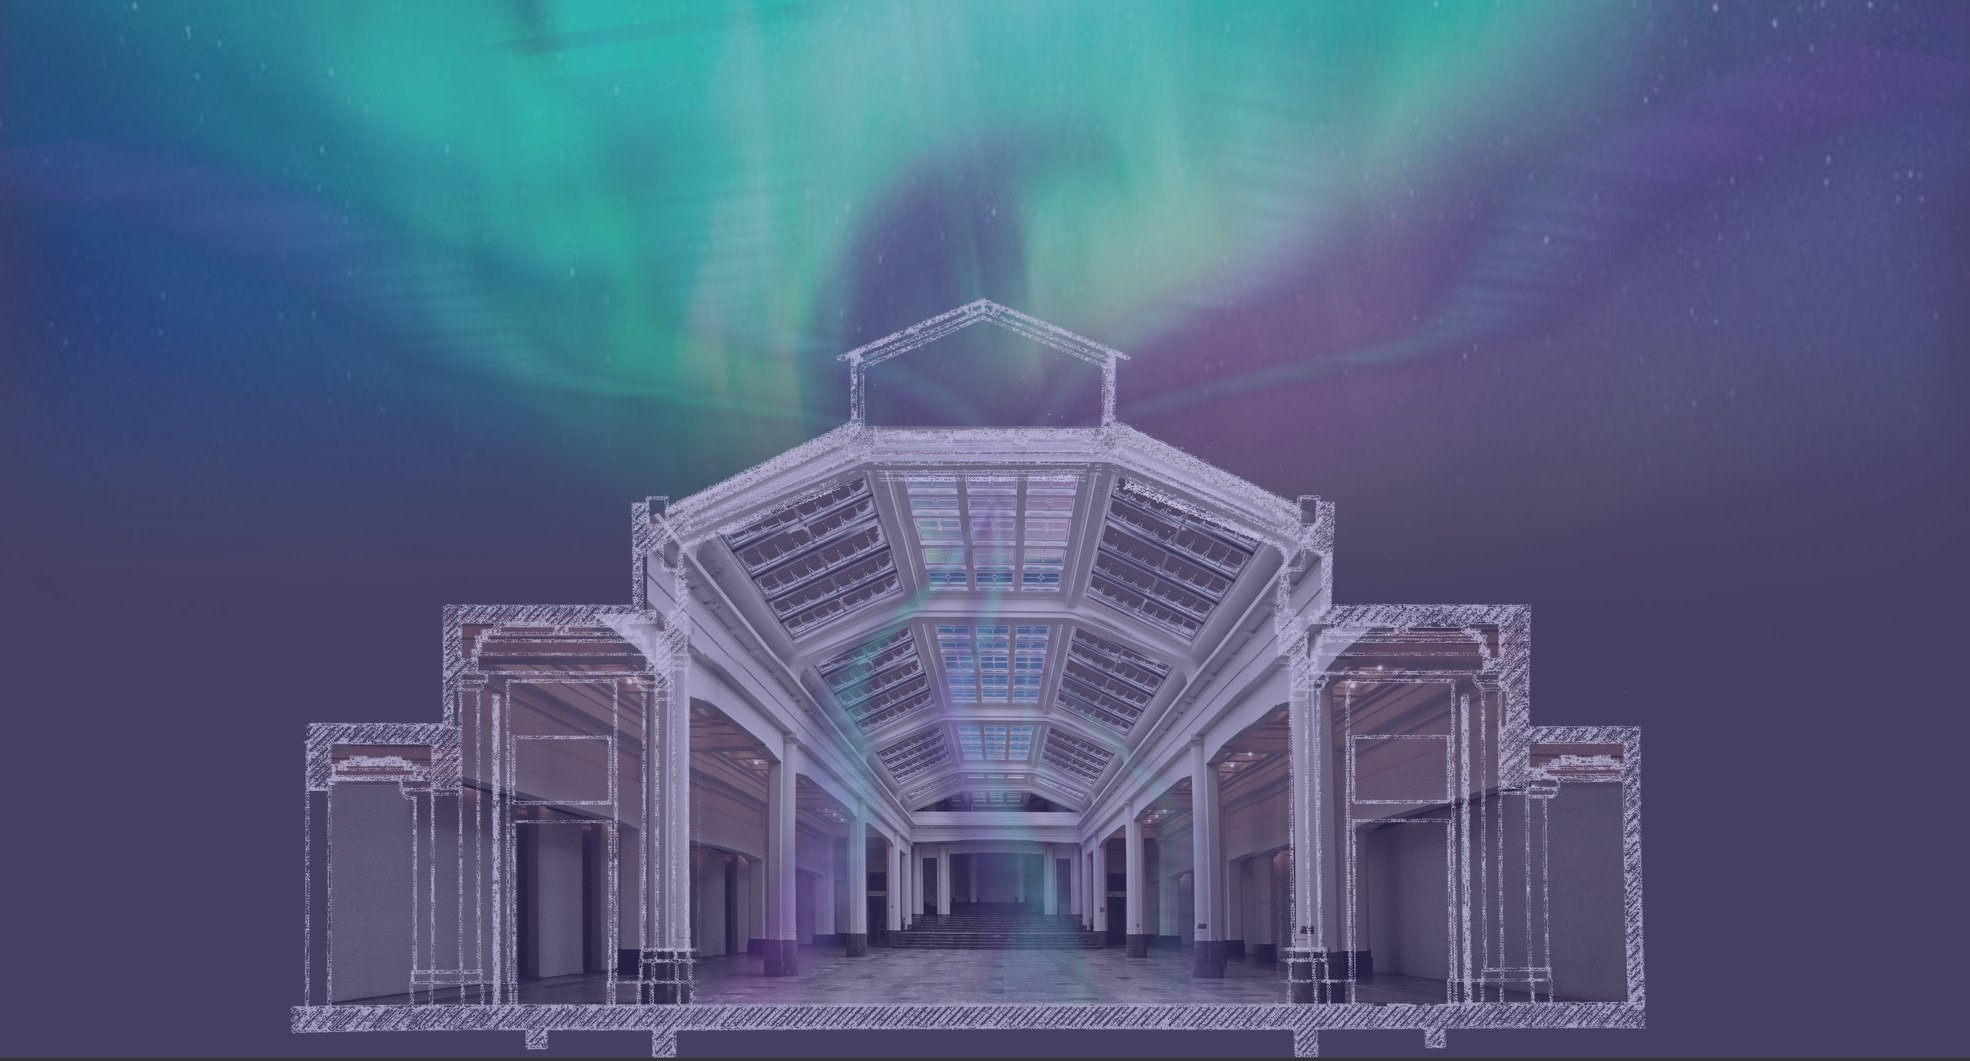 26. Northen lights Bozar